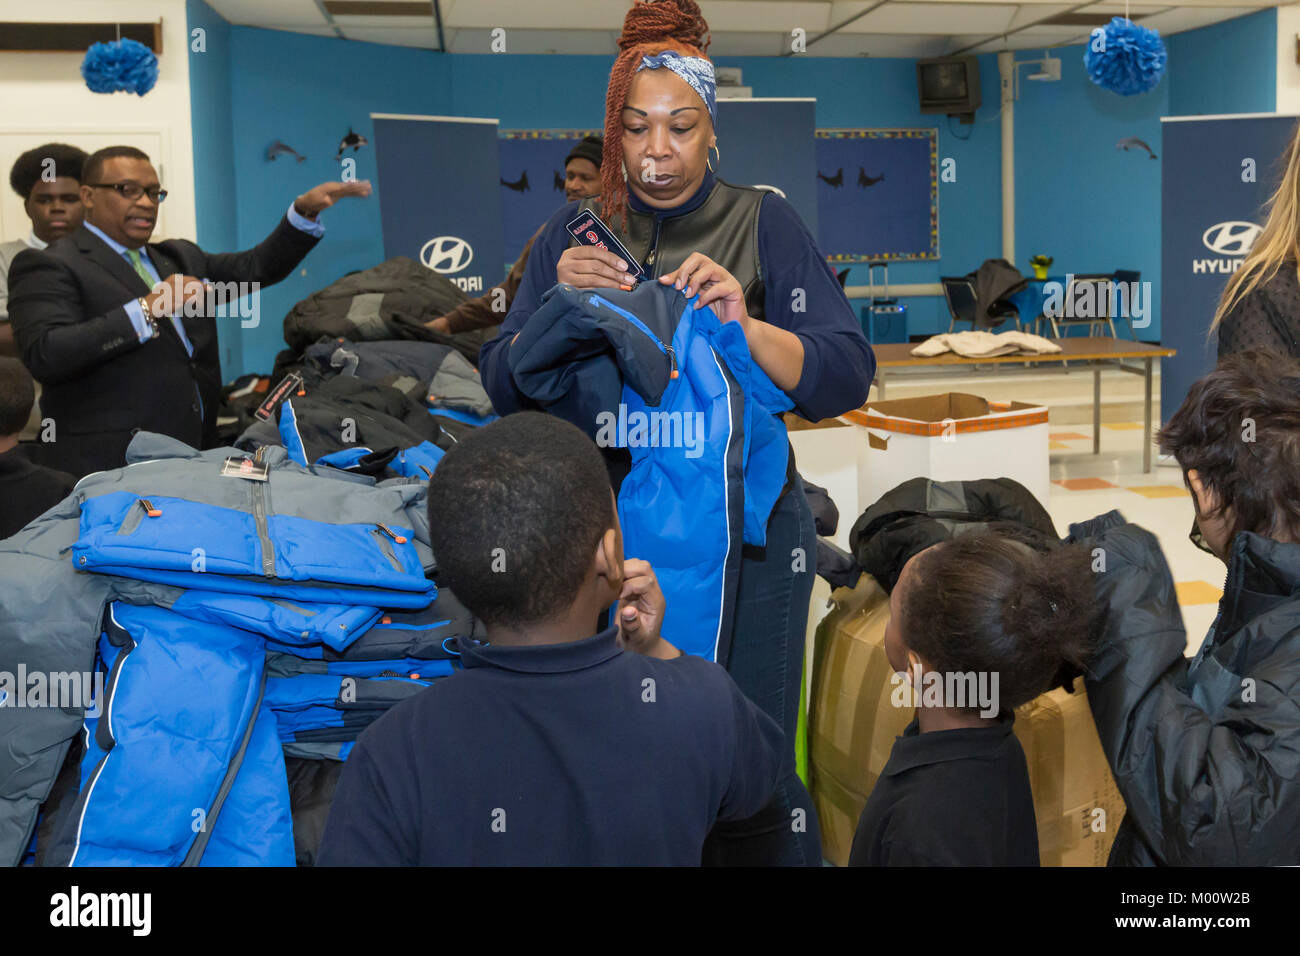 Hyundai Motor America distributed 1,000 winter coats to elementary and middle school children at Carstens Academy as part of its annual Coats for Kids ...